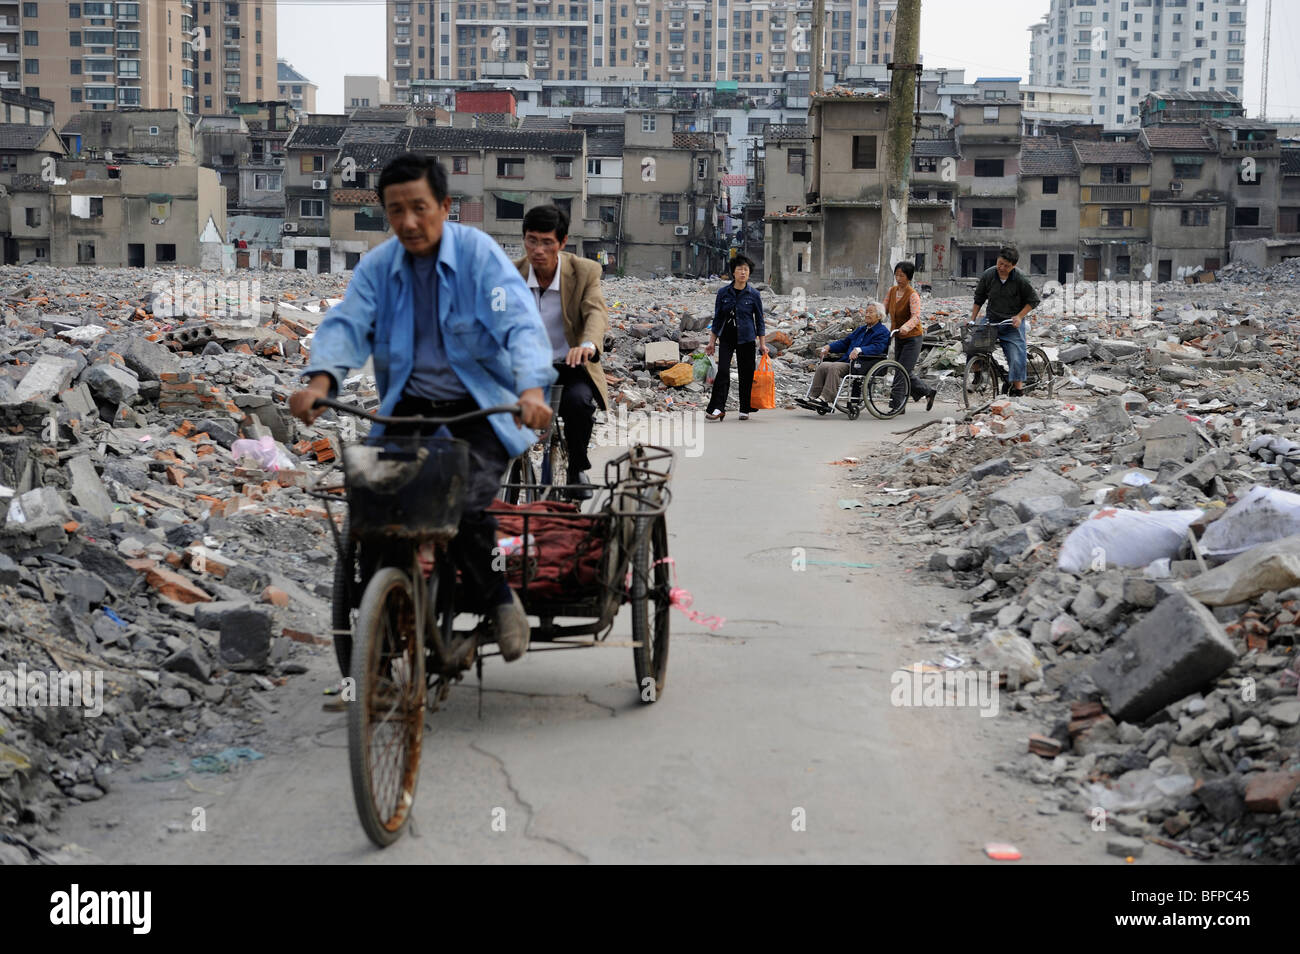 People through ruins of dilapidated residential area in ...